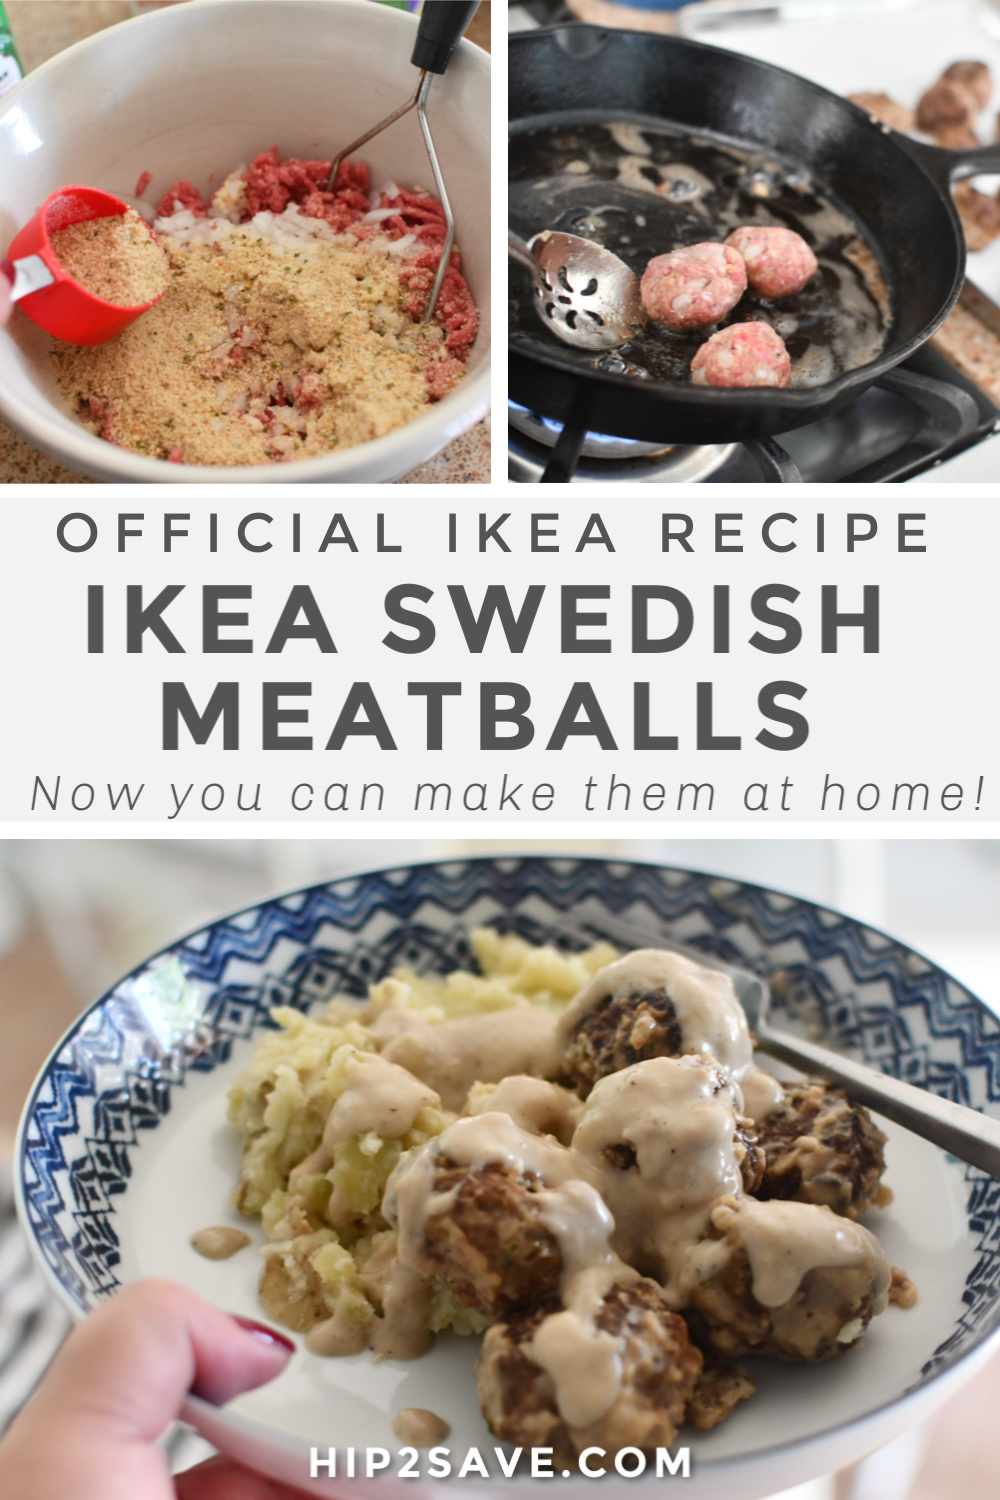 How To Make Ikea Swedish Meatballs Recipe At Home Hip2save